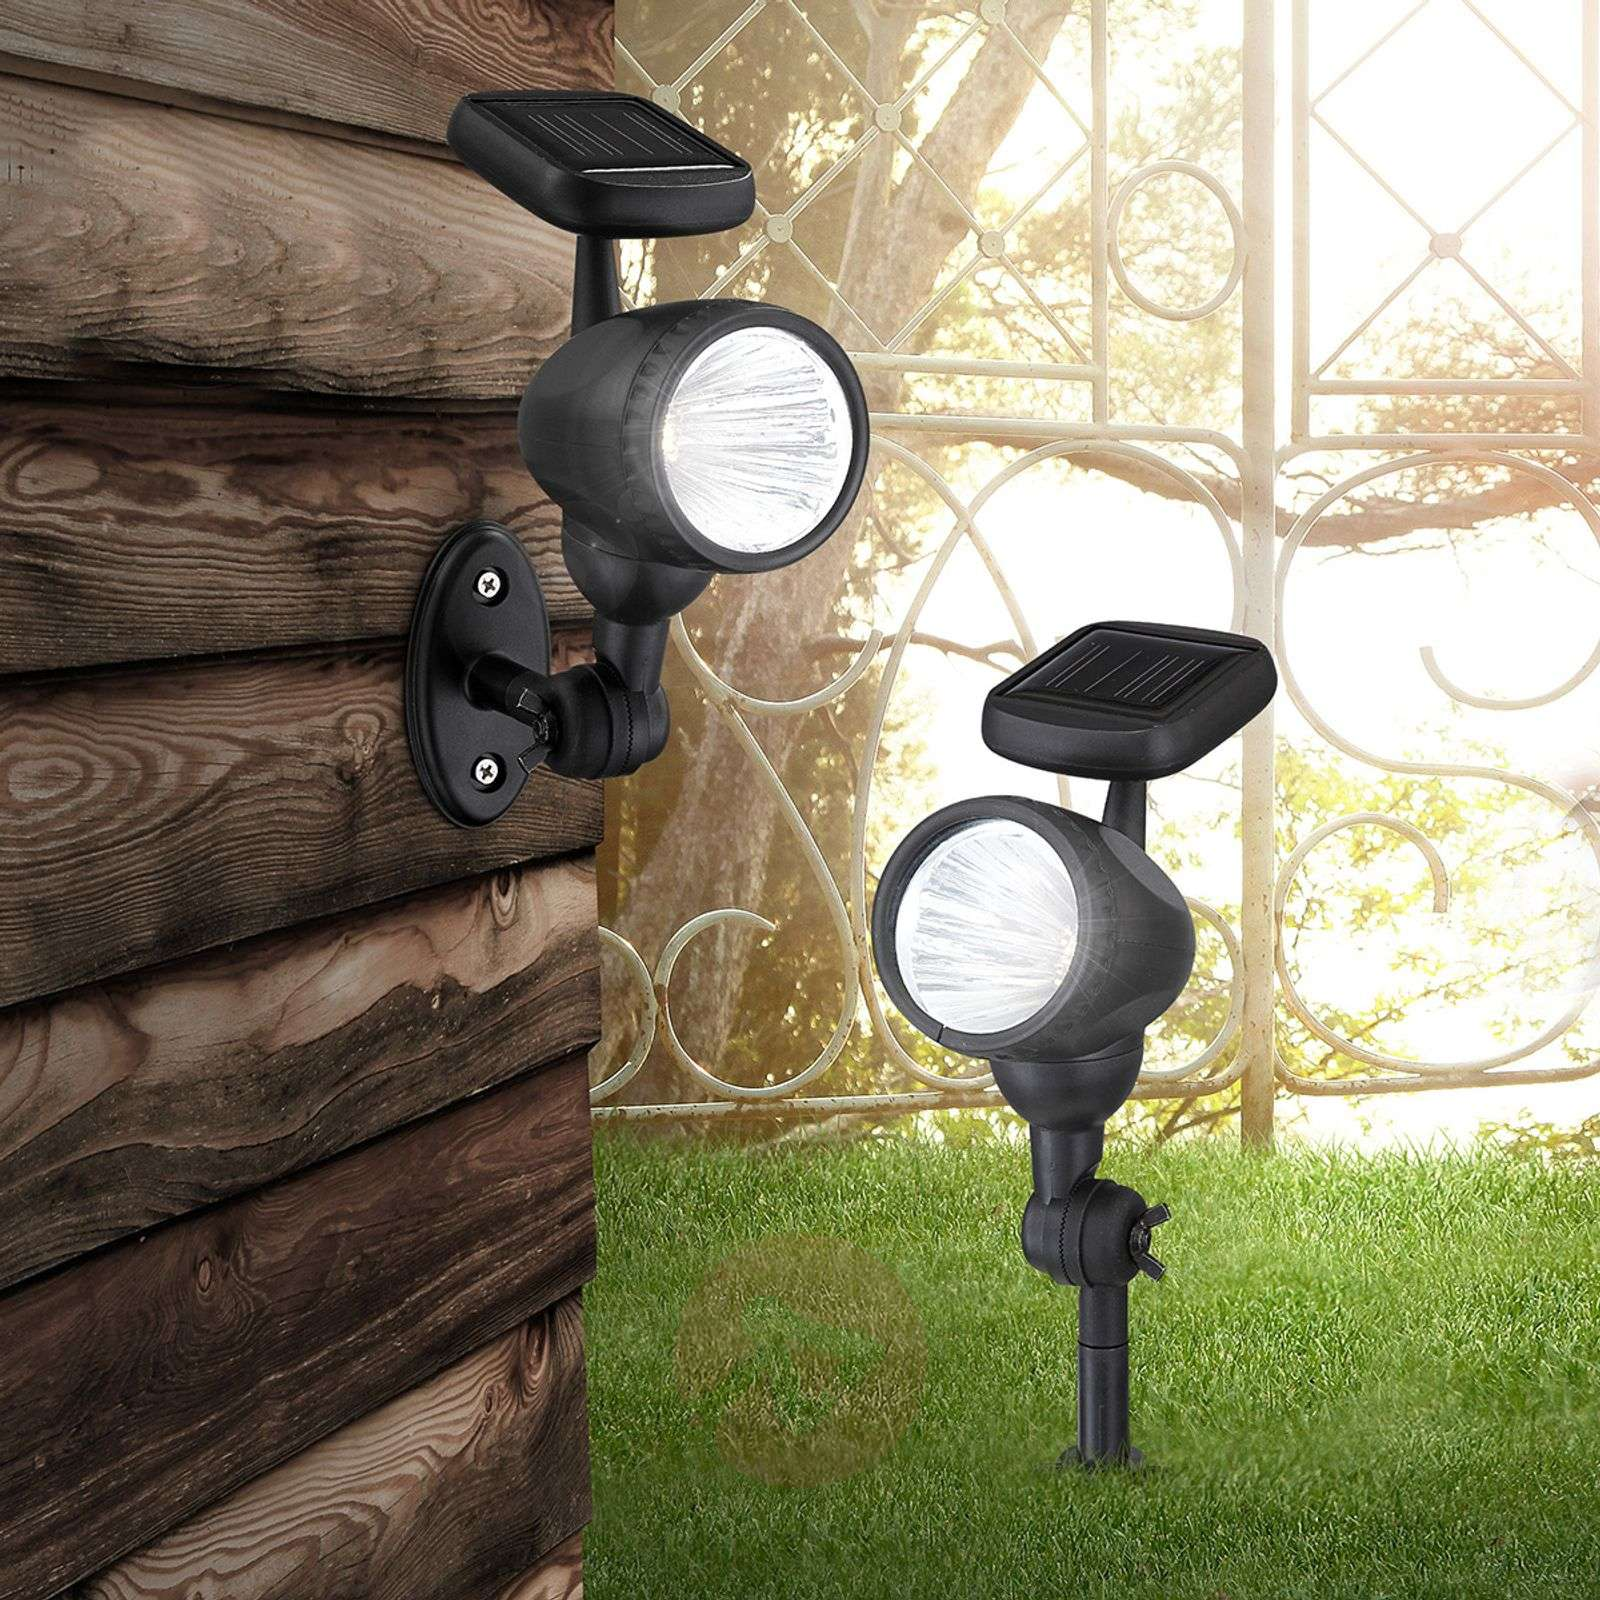 Solar outdoor wall light Mawe-4014993-01